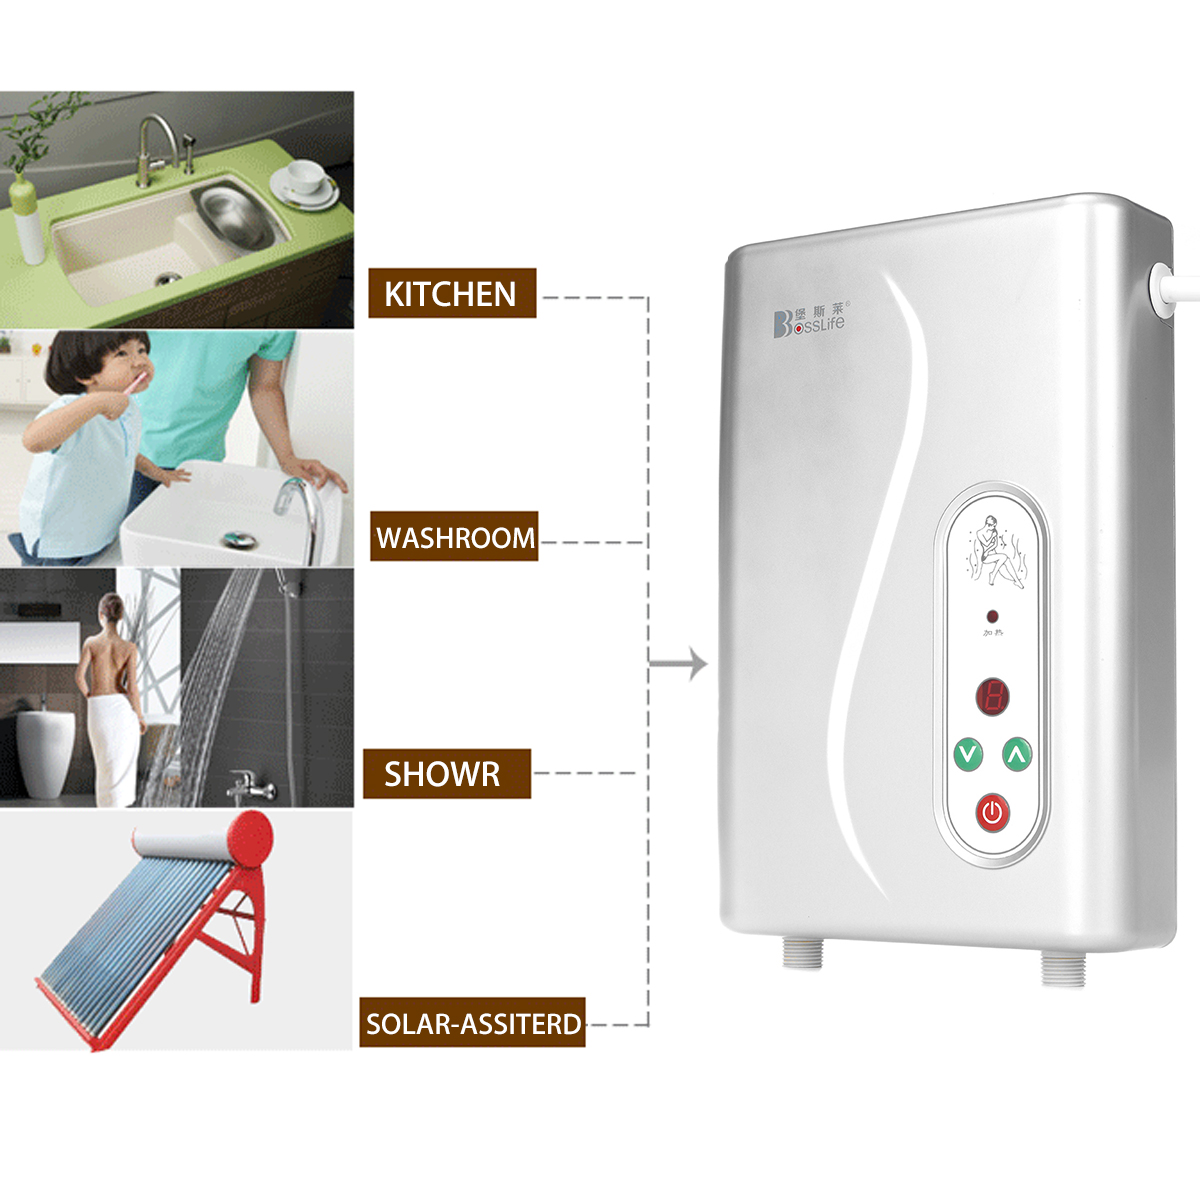 Electric hot water heater instant shower panel system kit for 1 bathroom tankless water heater